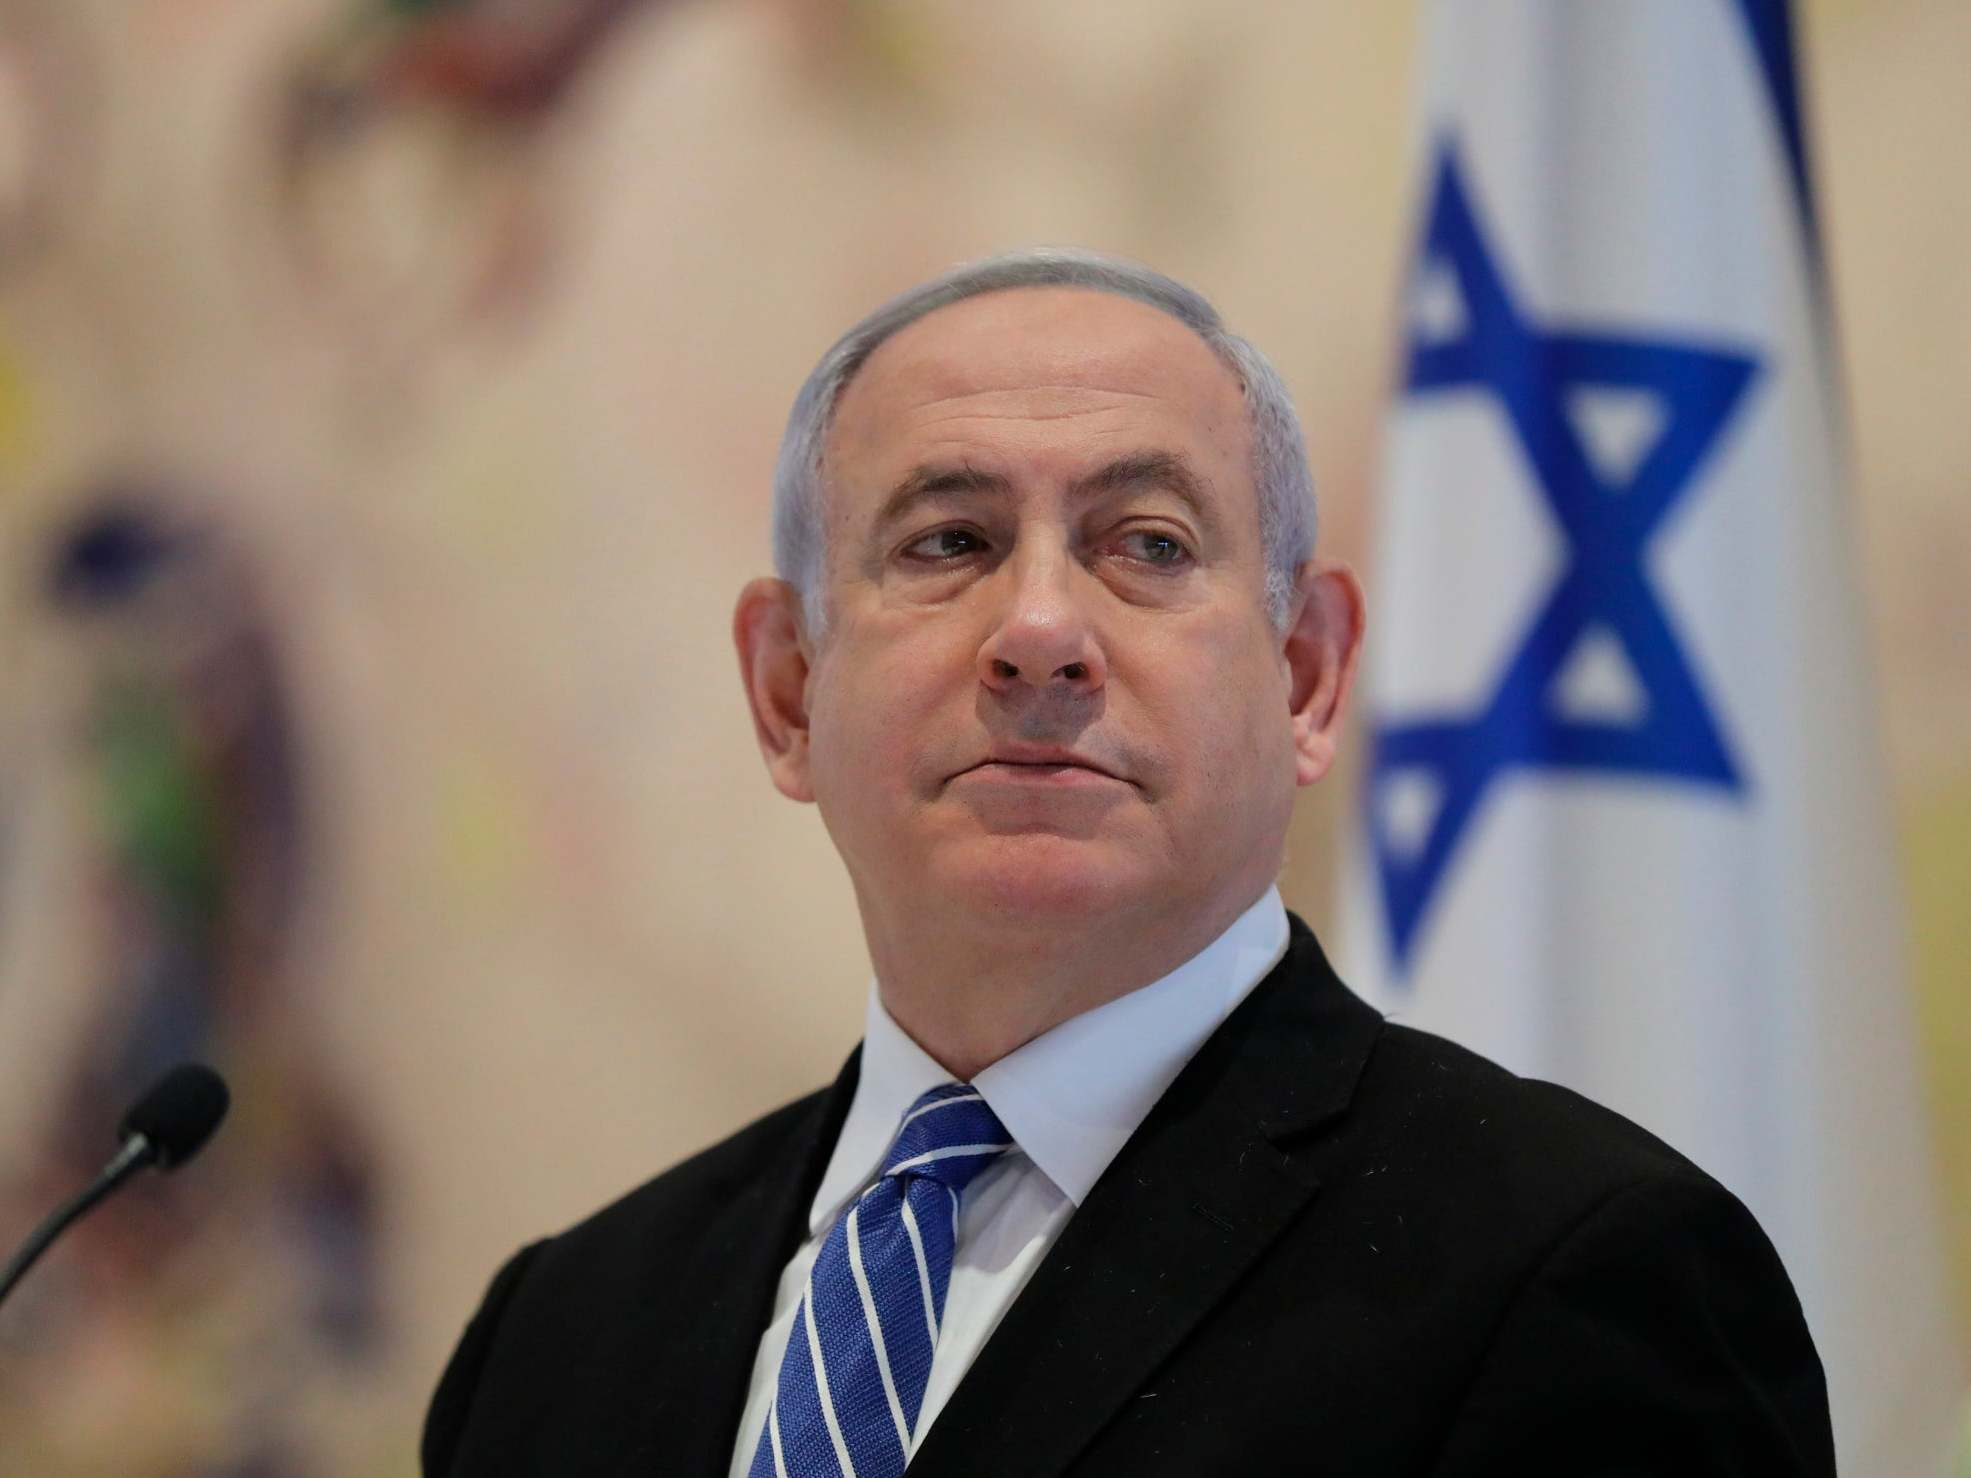 Benjamin Netanyahu – live: Prime minister to appear in court on corruption charges today in first criminal trial against sitting Israeli leader